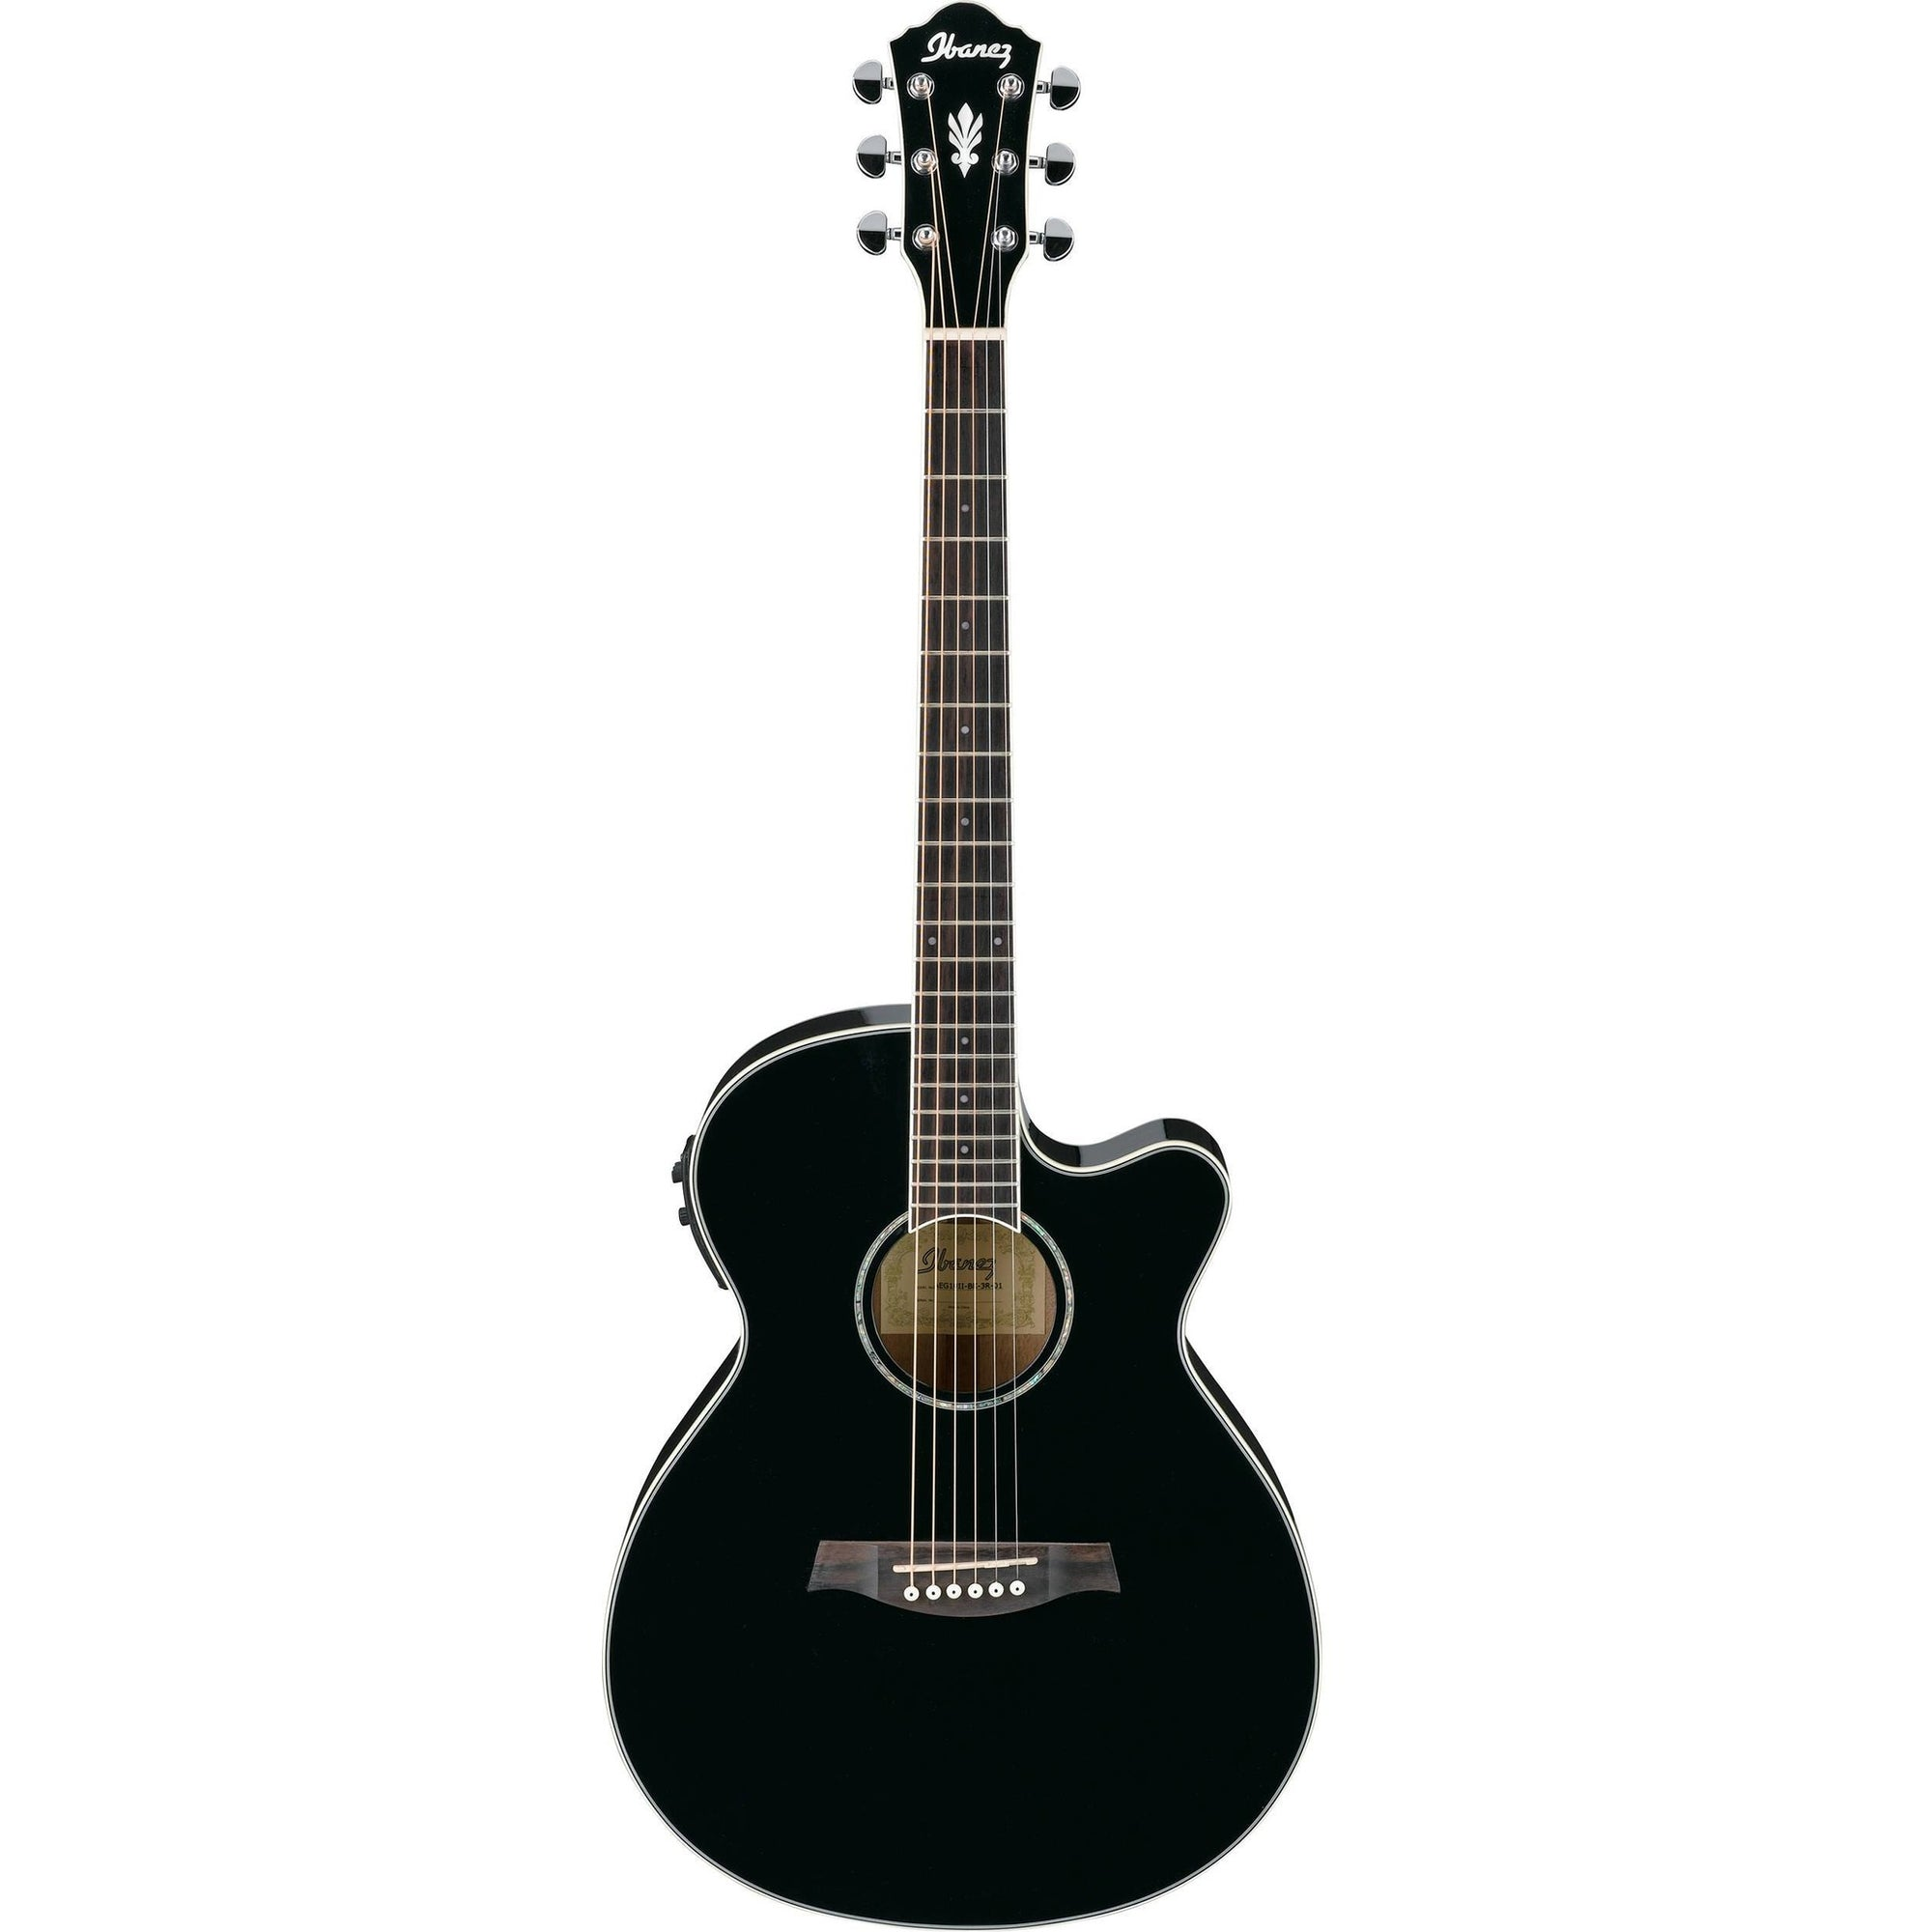 Ibanez AEG10II-BK Black Acoustic-Electric Guitar